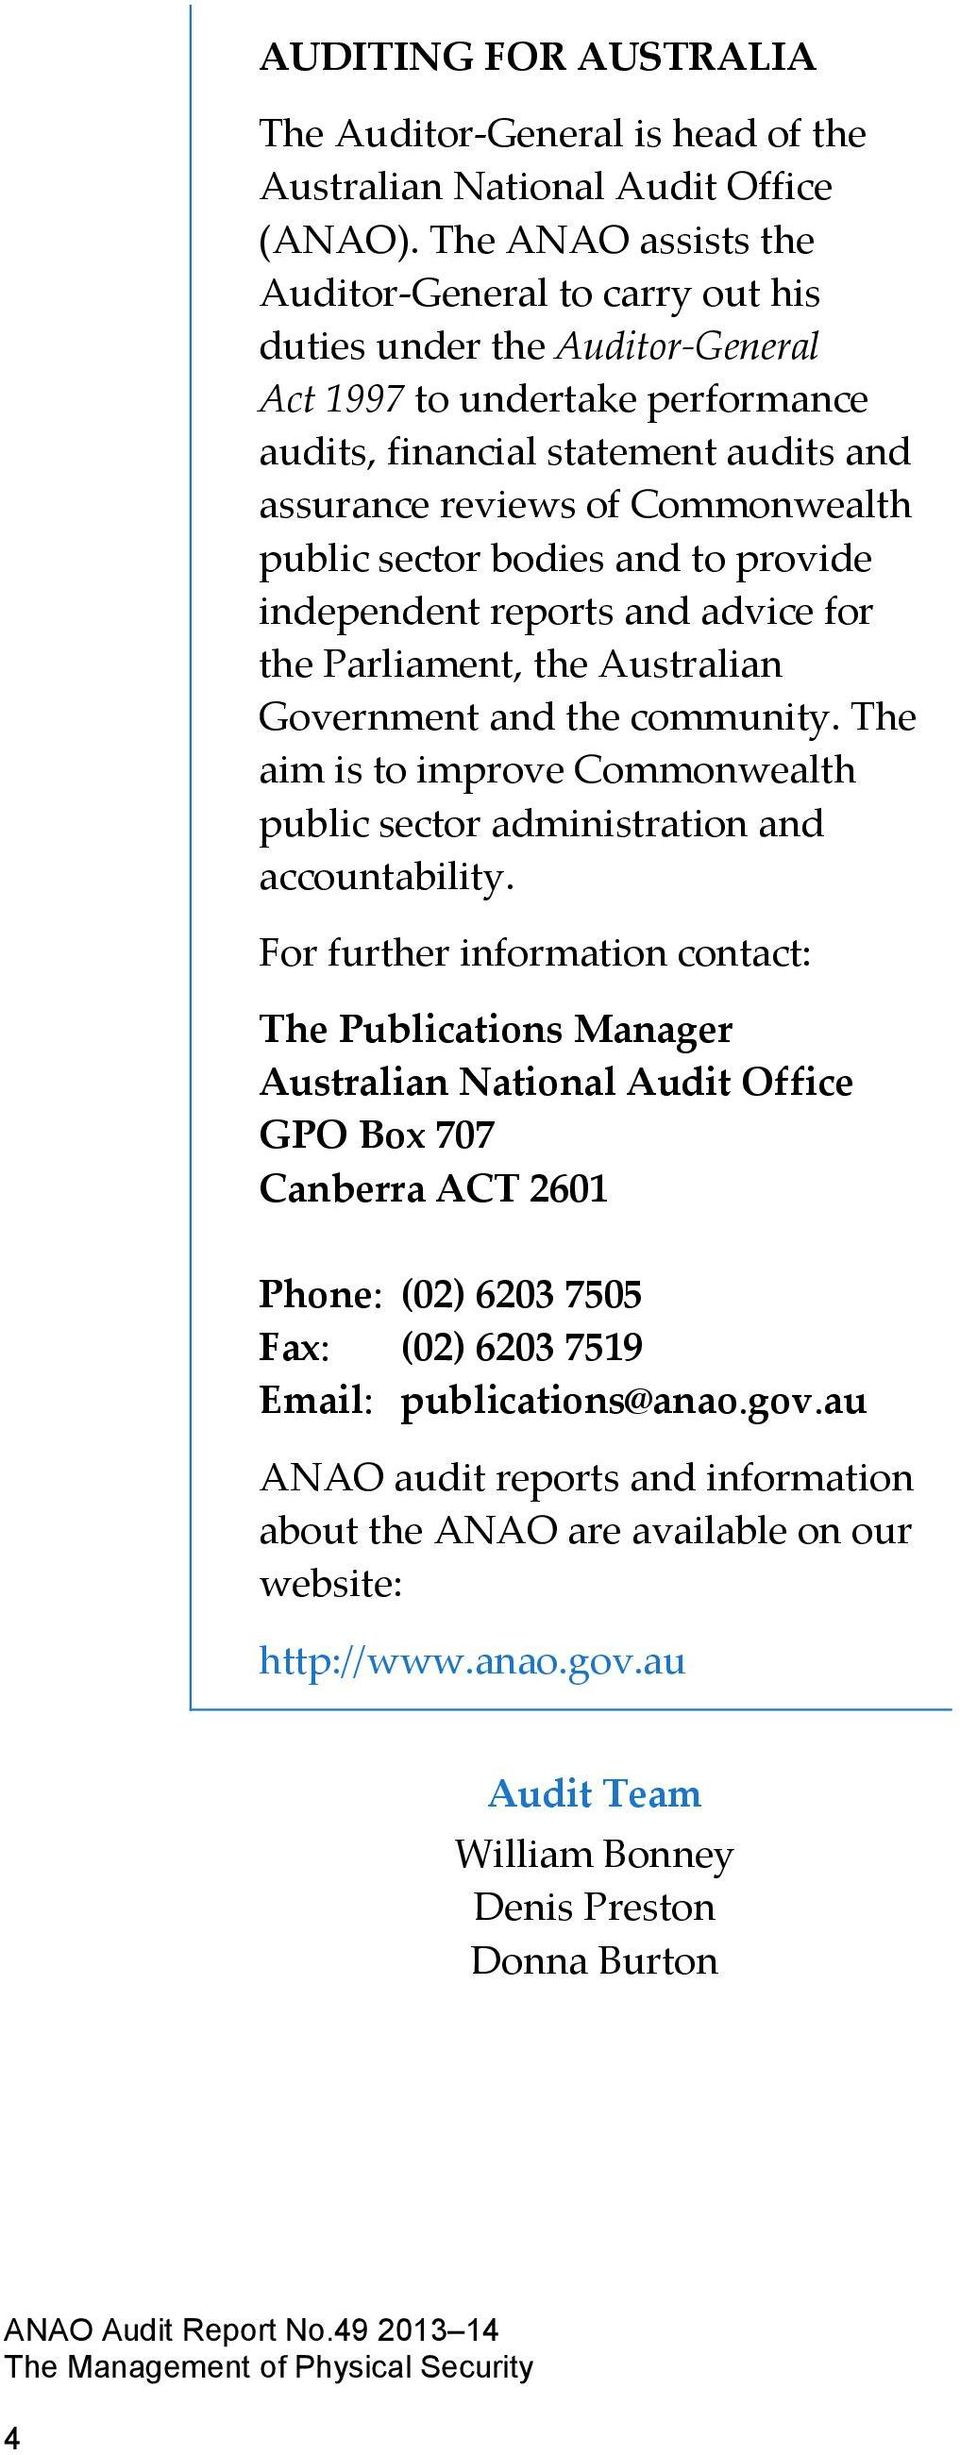 public sector bodies and to provide independent reports and advice for the Parliament, the Australian Government and the community.